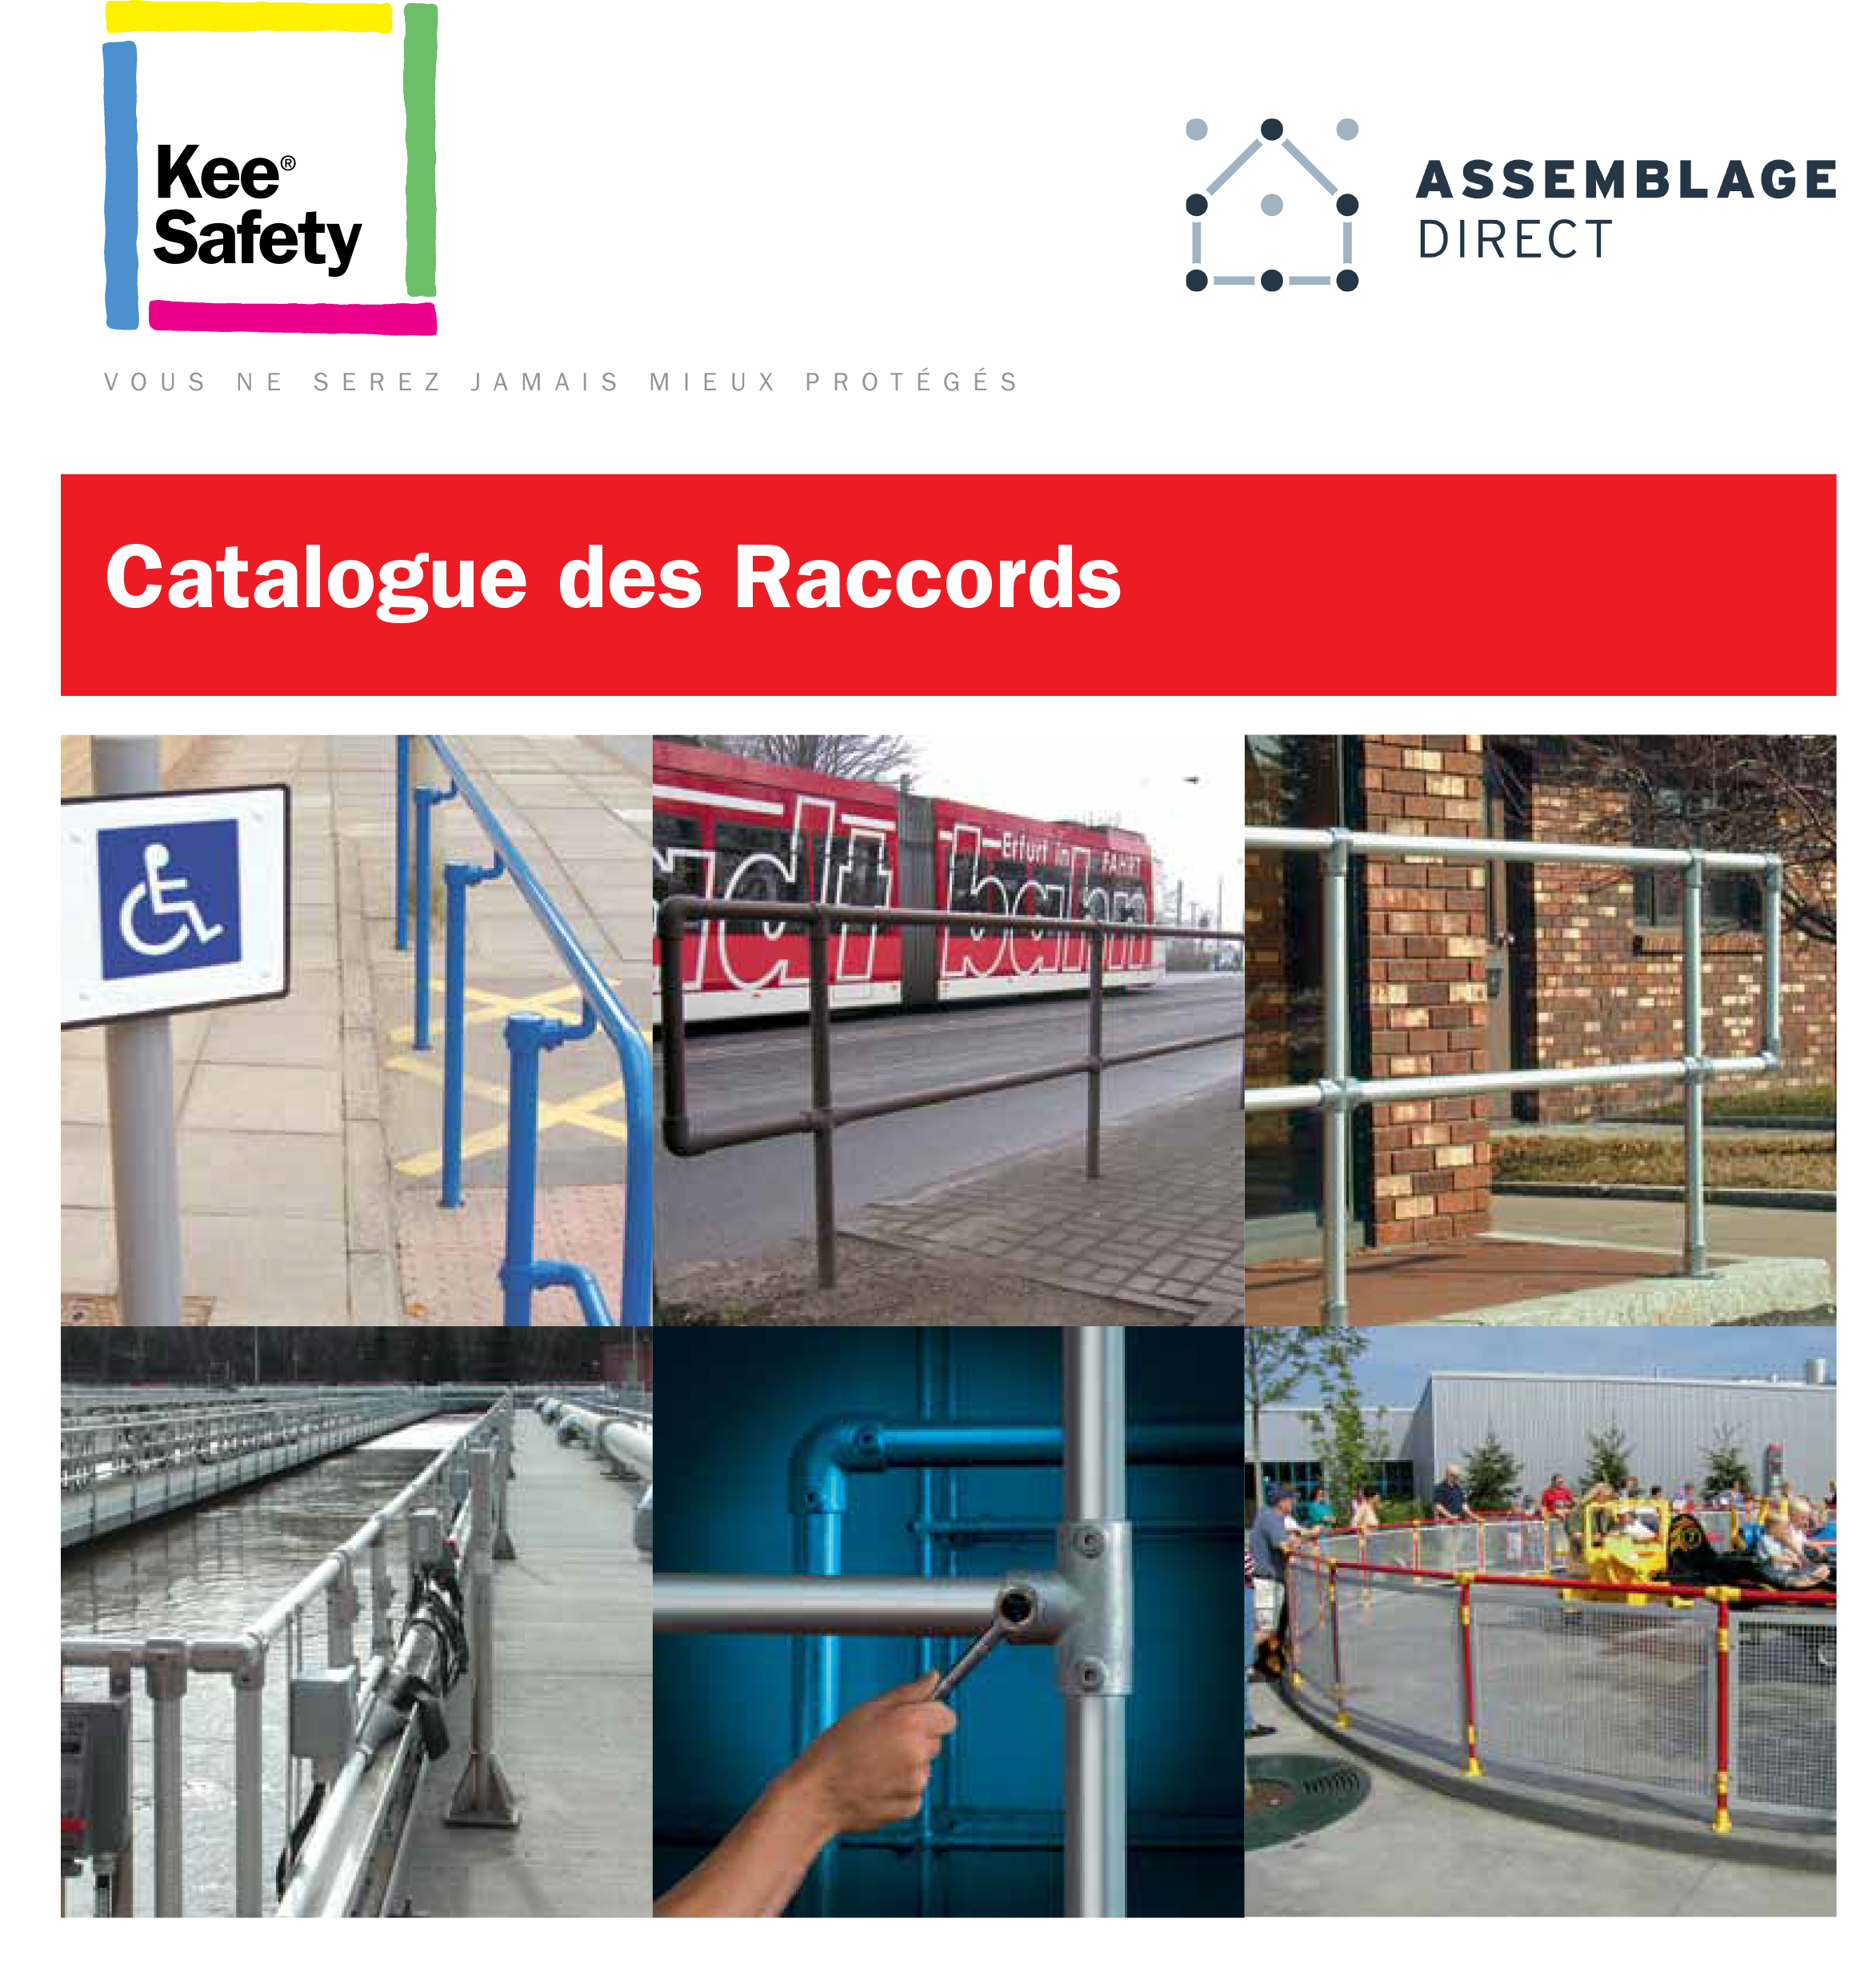 catalogue des raccords